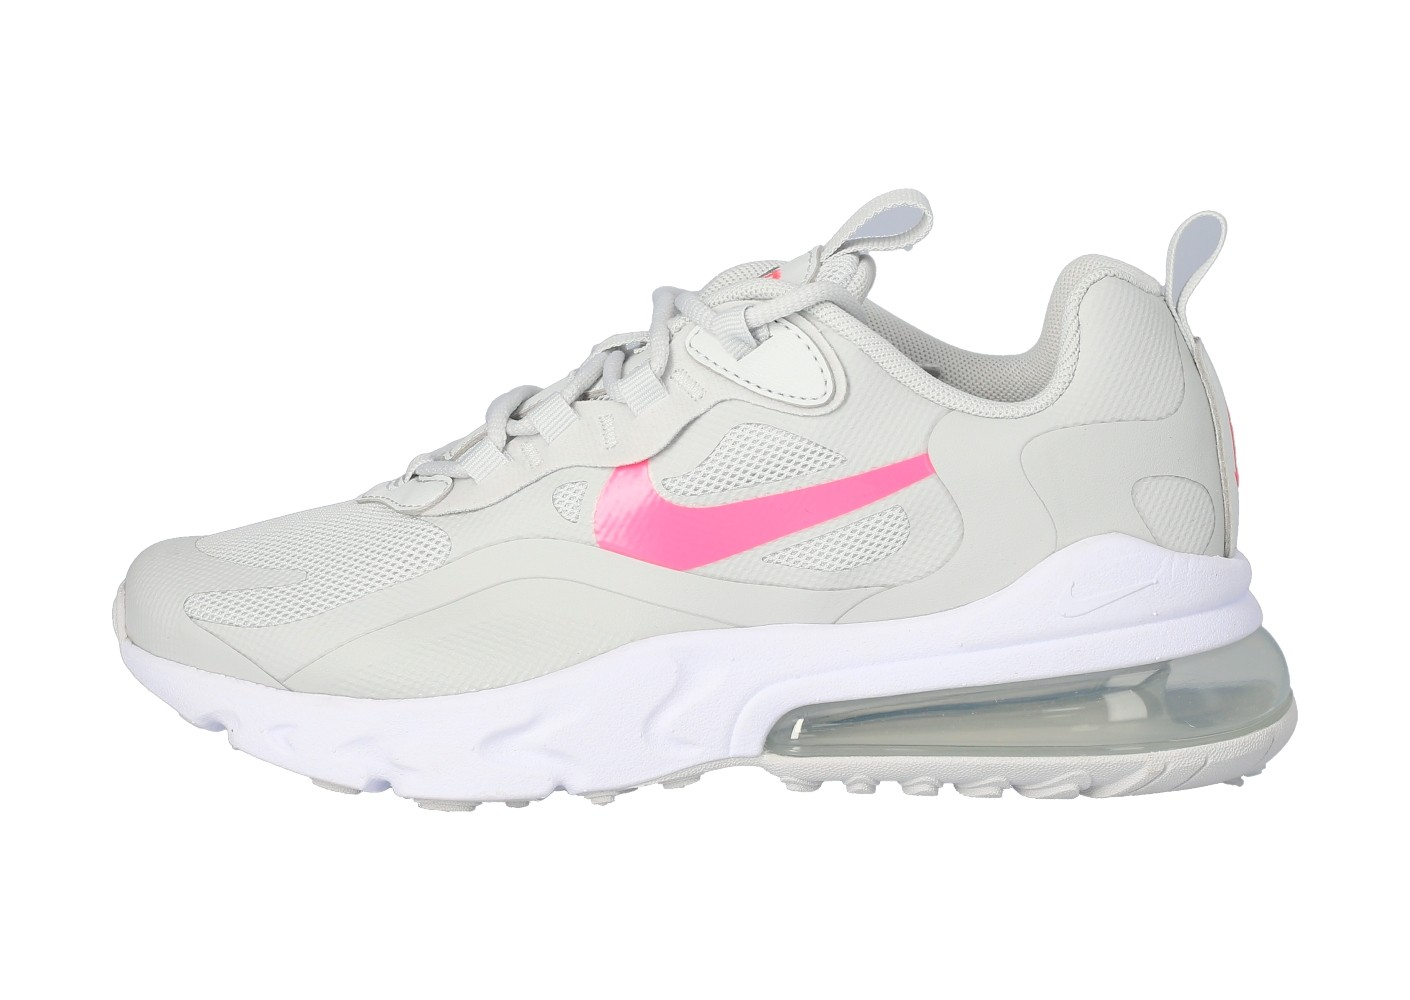 chaussure nike ado fille blanche